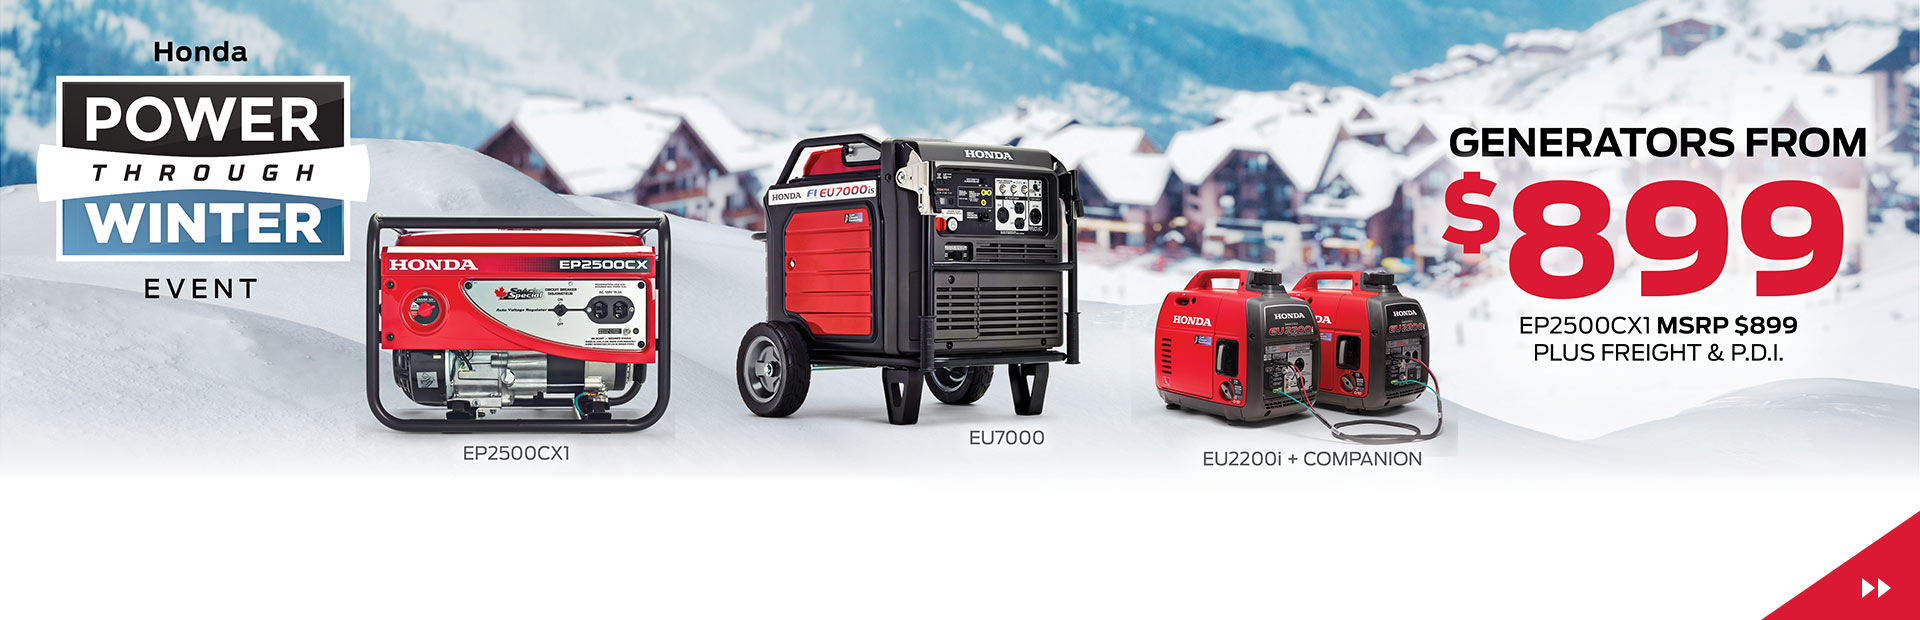 Honda Power Through Winter Event - Generators from $899!